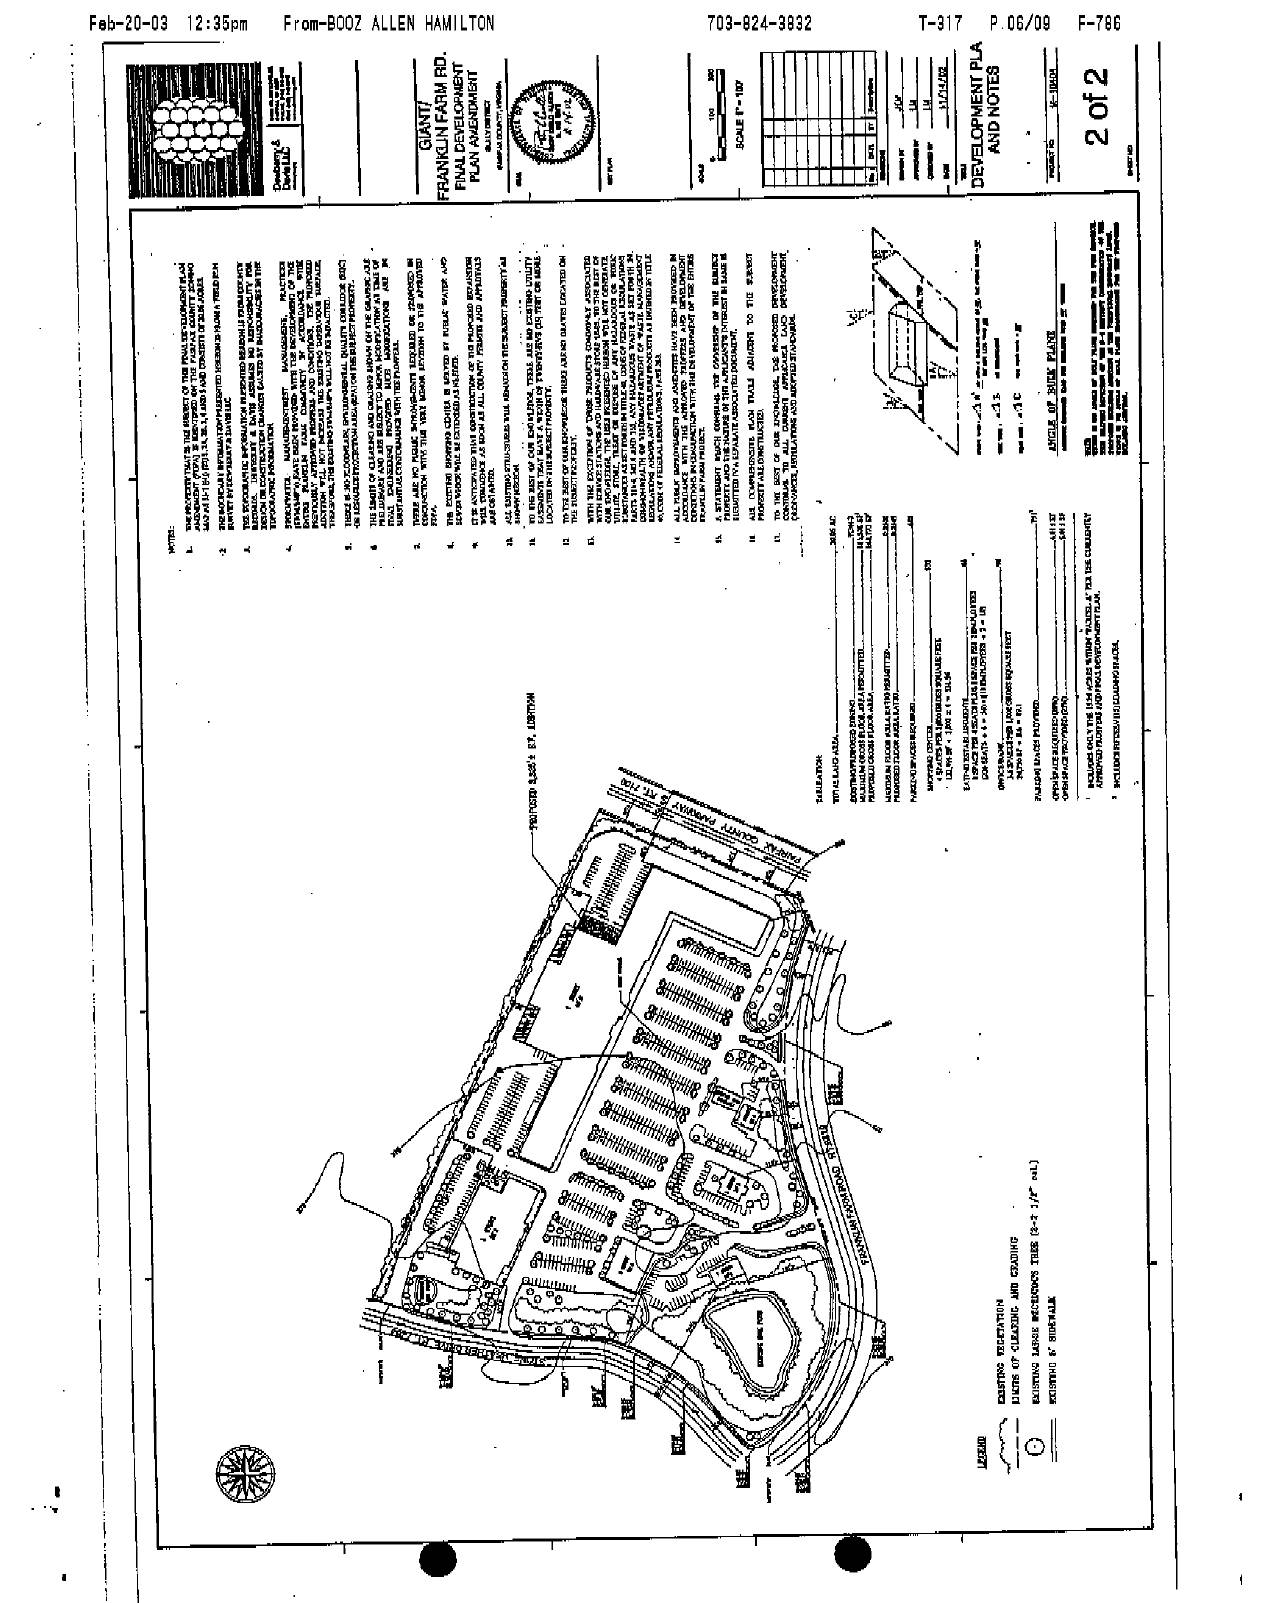 Agenda for 3 March 2003 Sully District Land Use and